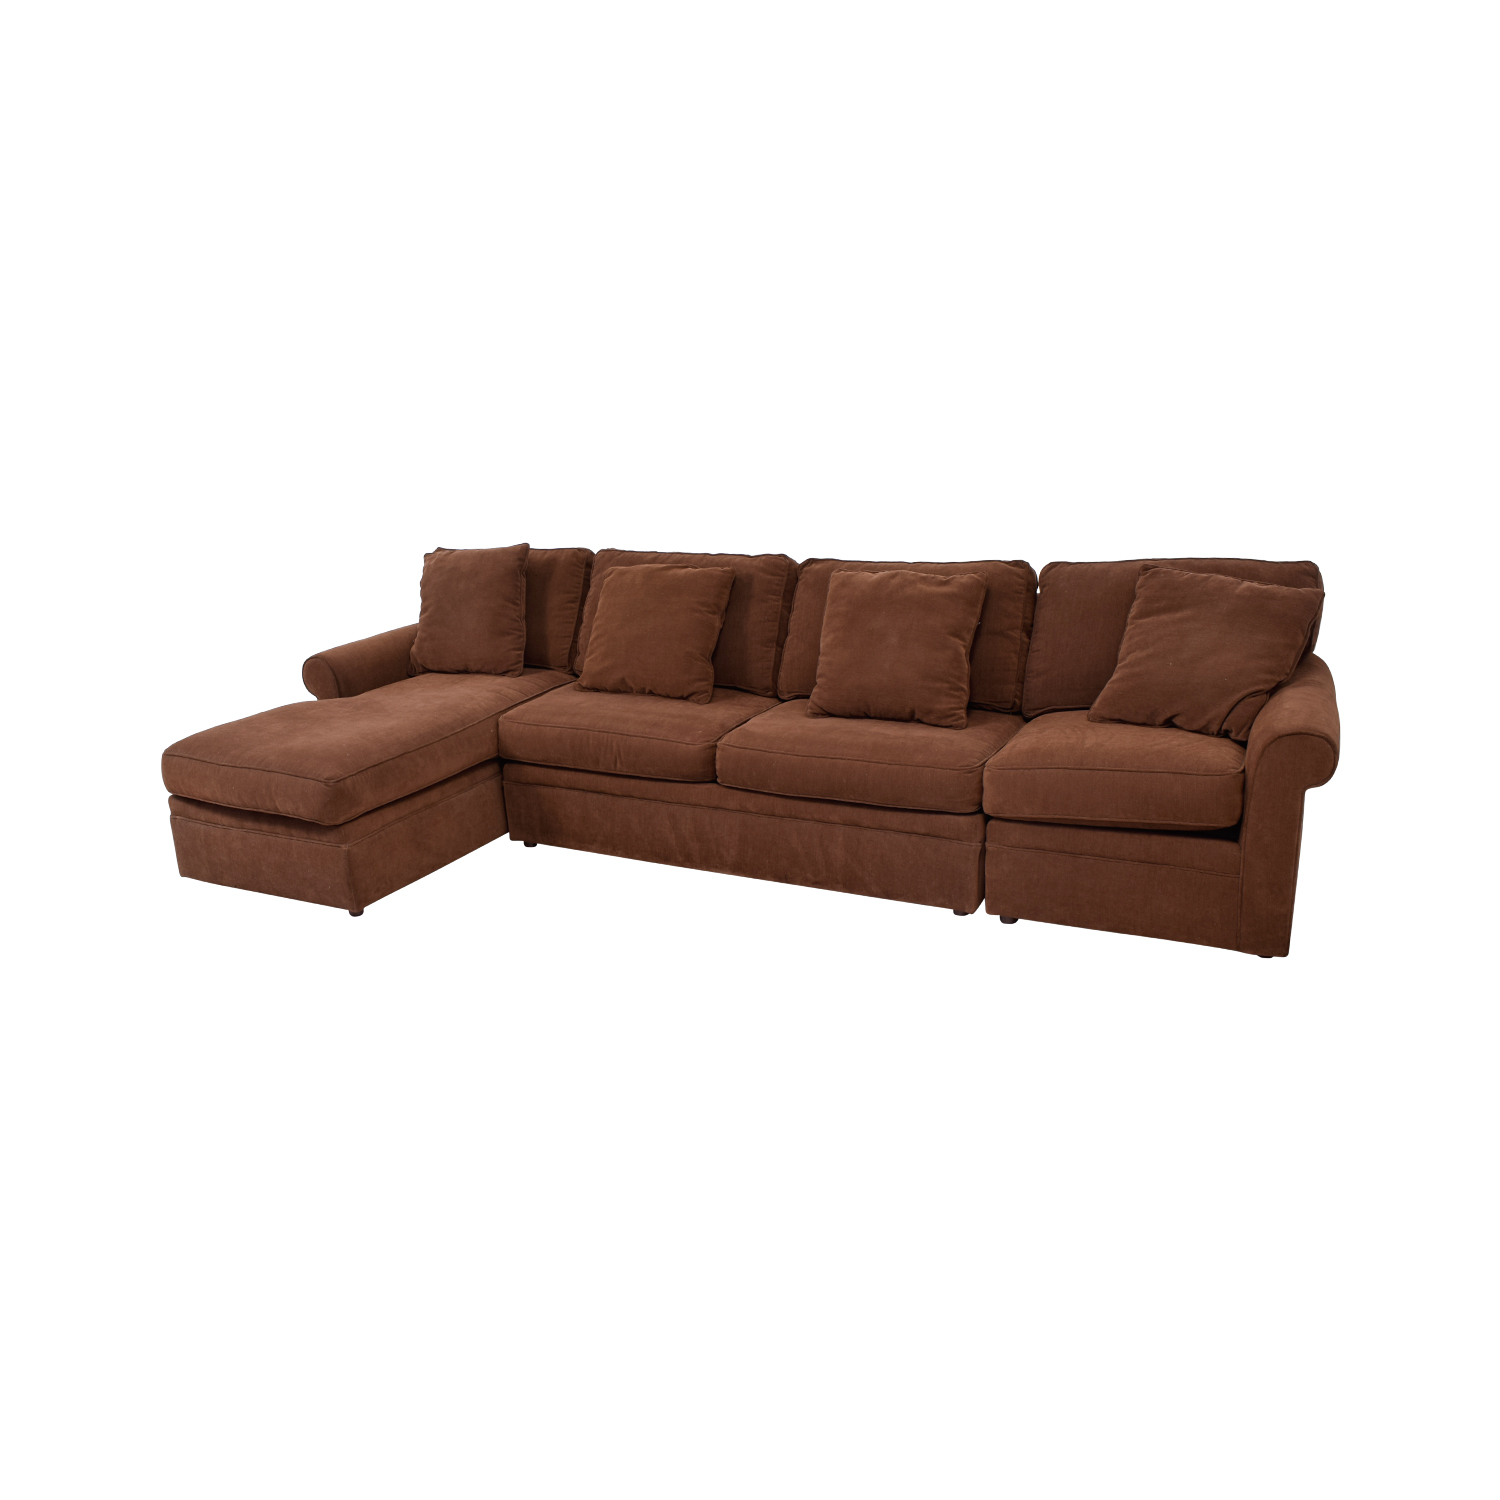 Merveilleux ... Rowe Furniture Rowe Furniture Brown Sectional Sofa Price ...